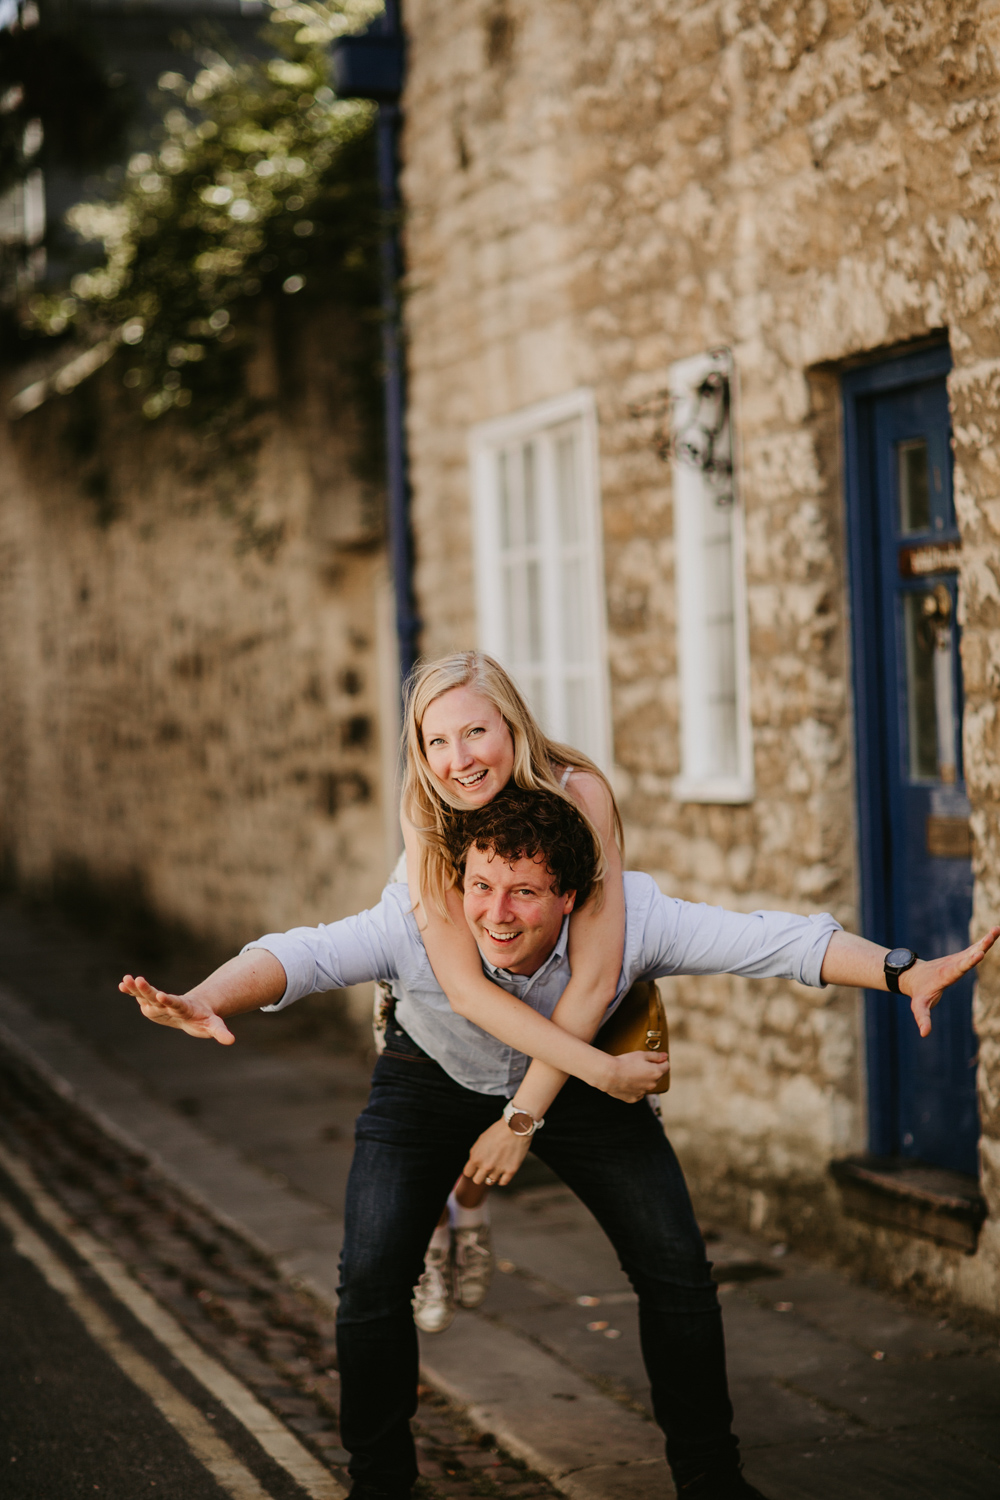 Oxford city photo session by Oxford wedding photographers